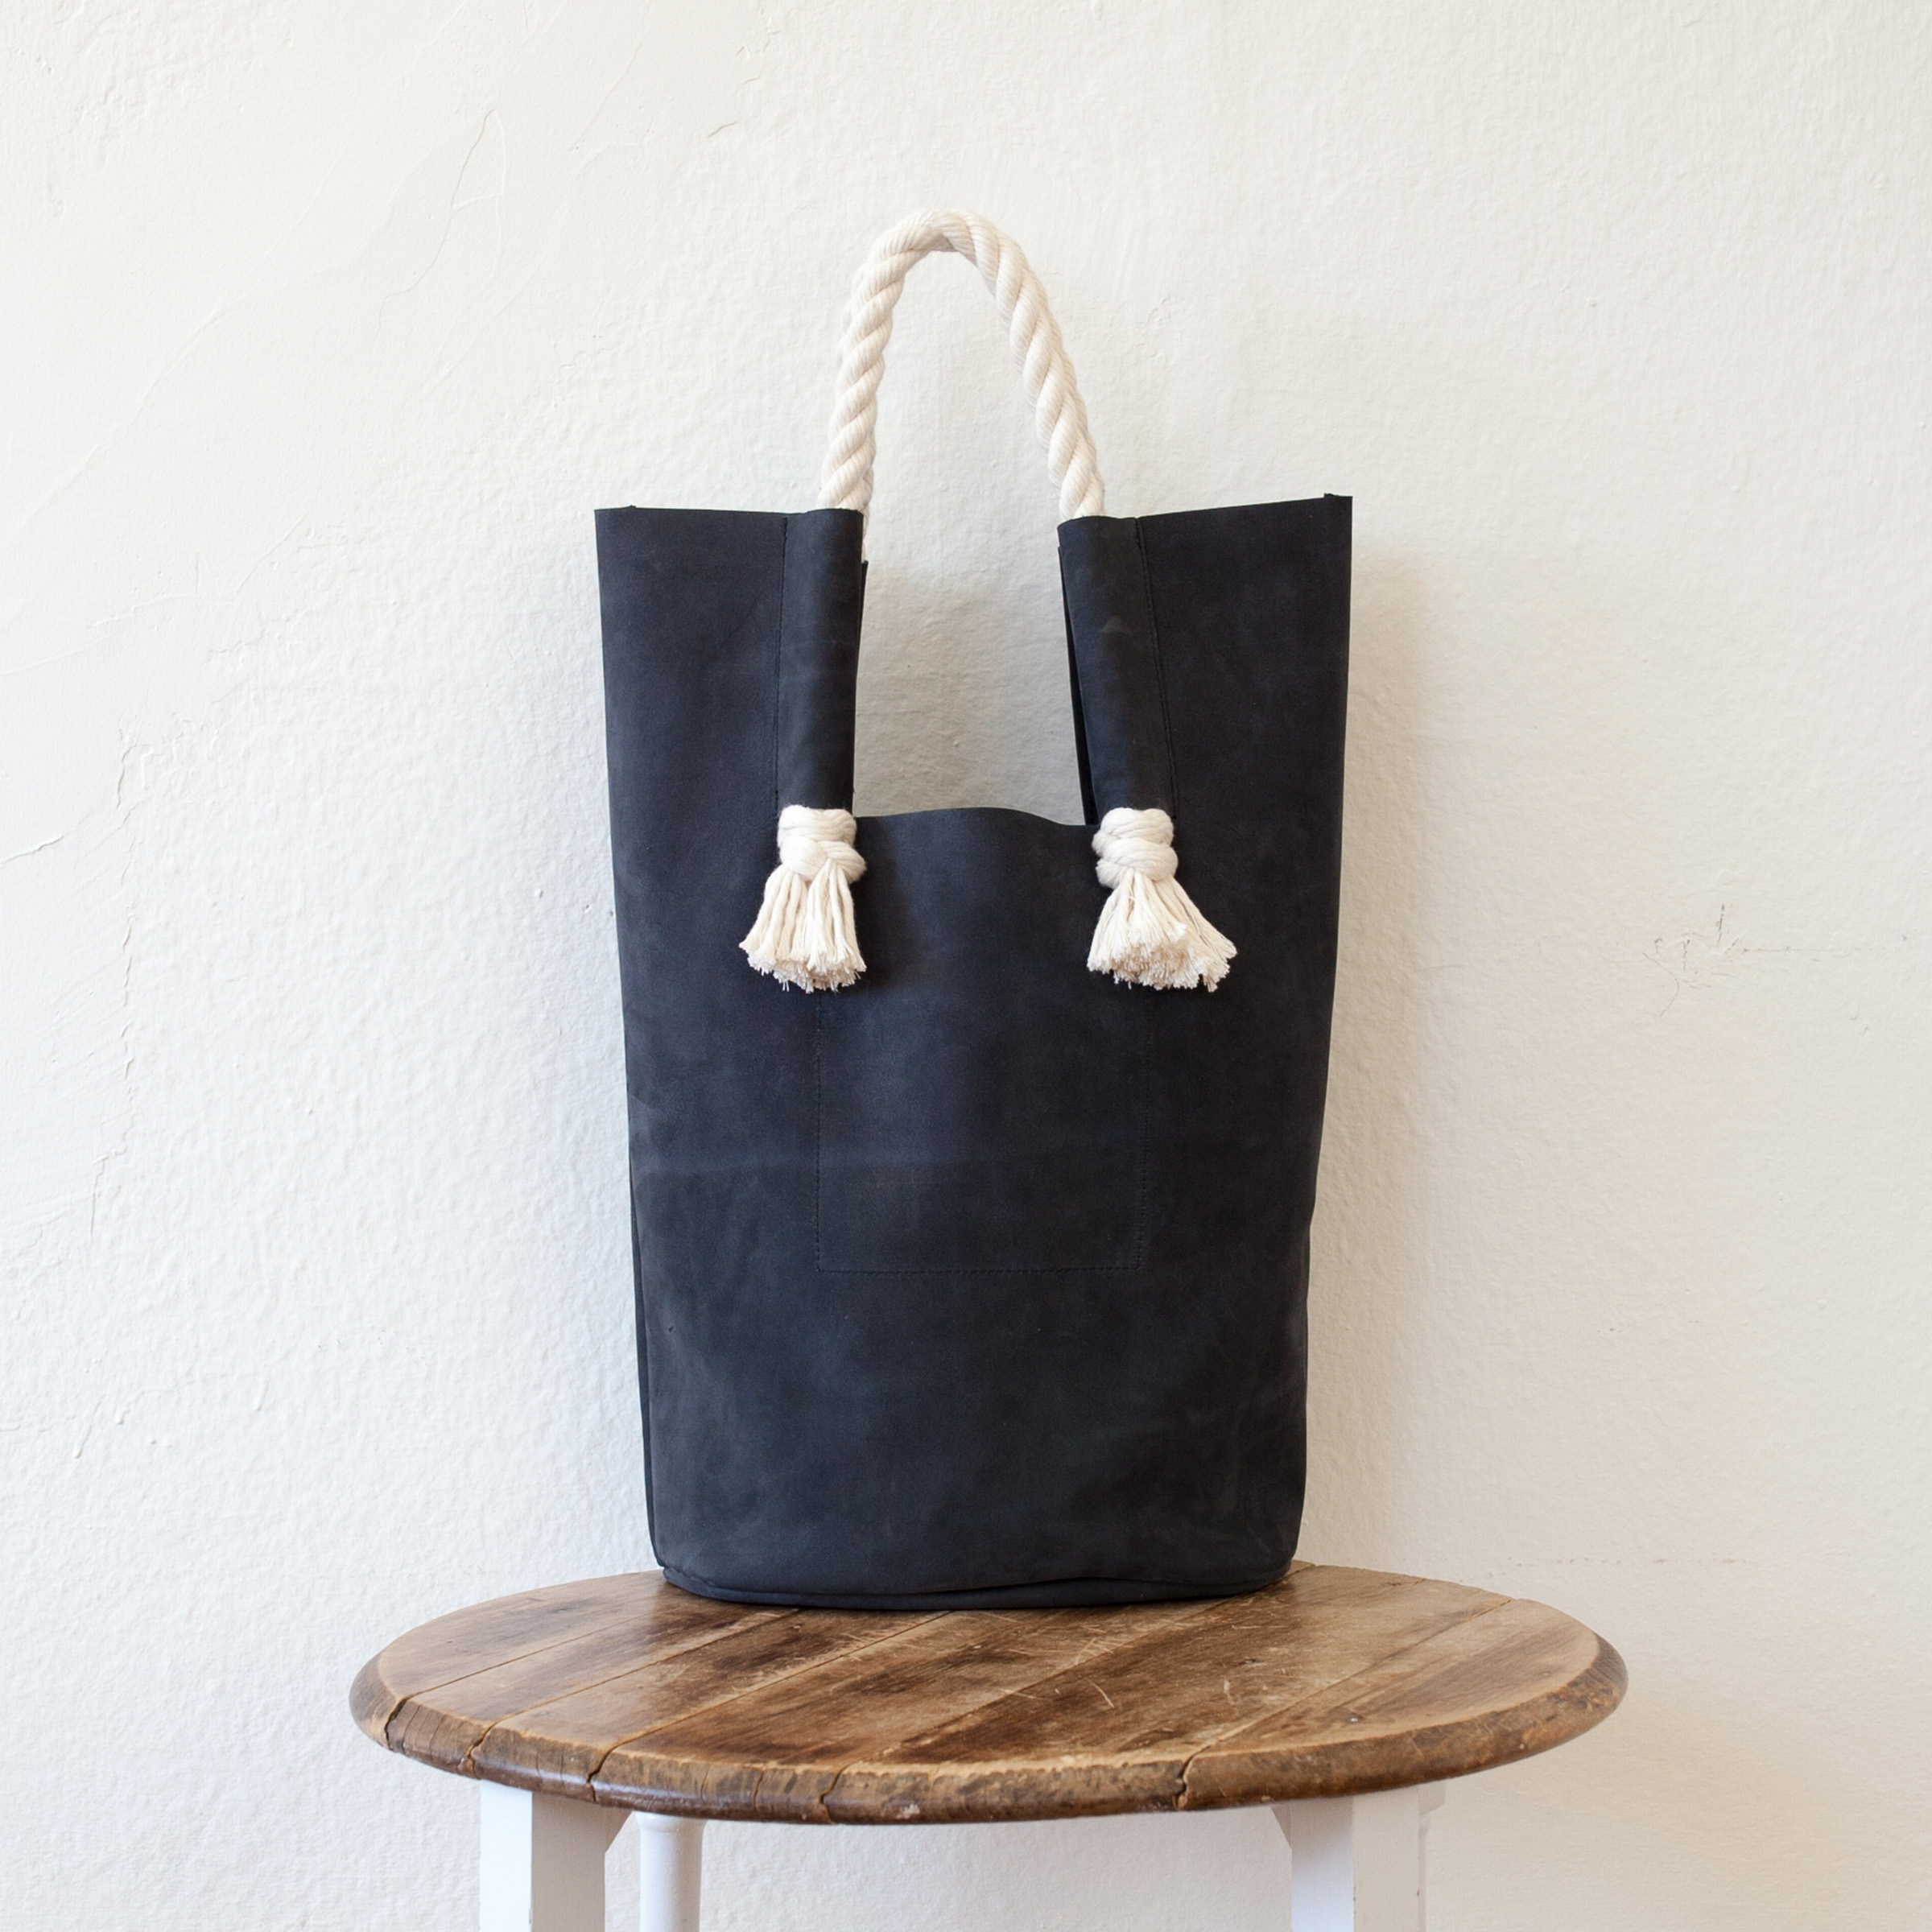 goodwestco-basket-bag-charcoal-nubuck1.jpg